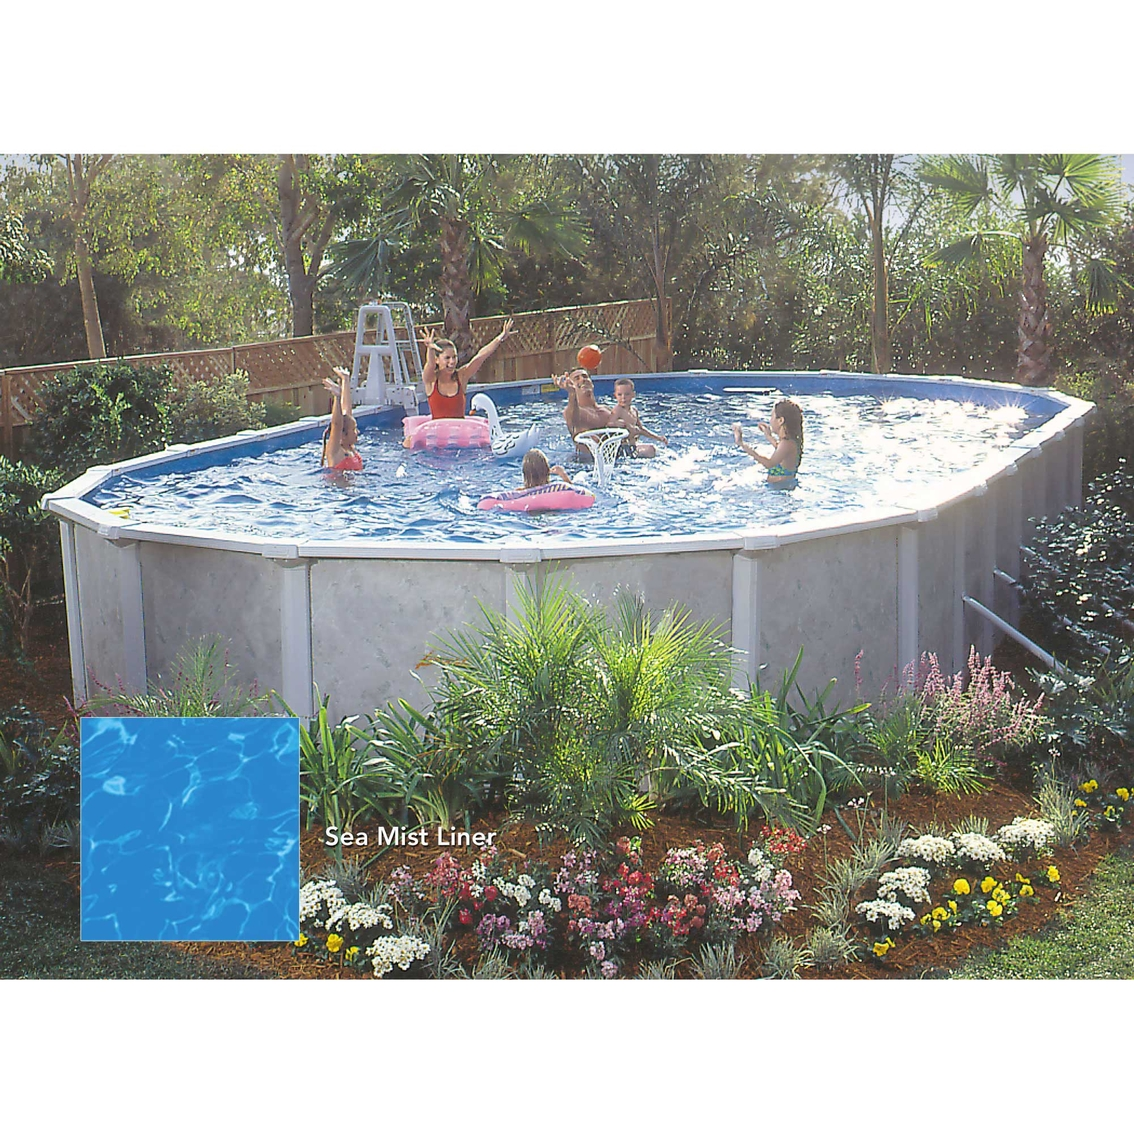 Lomart Grey Mist Oval Above Ground Swimming Pool Package Pools Sports Outdoors Shop The